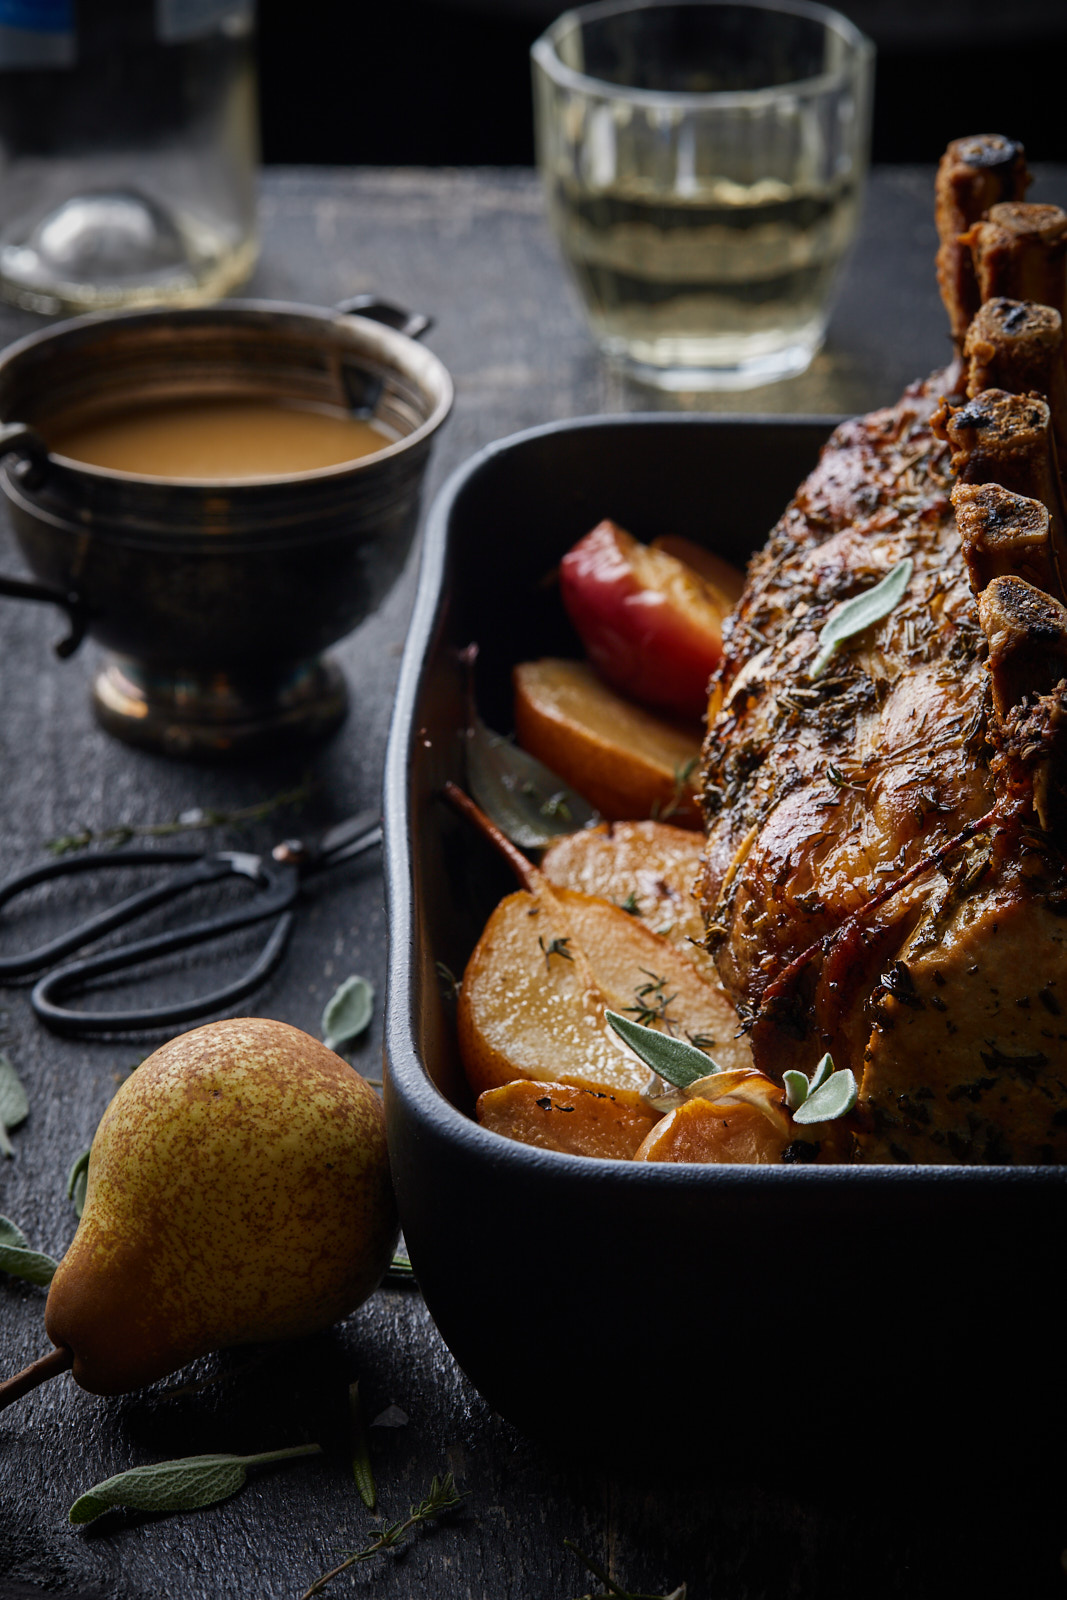 Pork roast with apples and pears